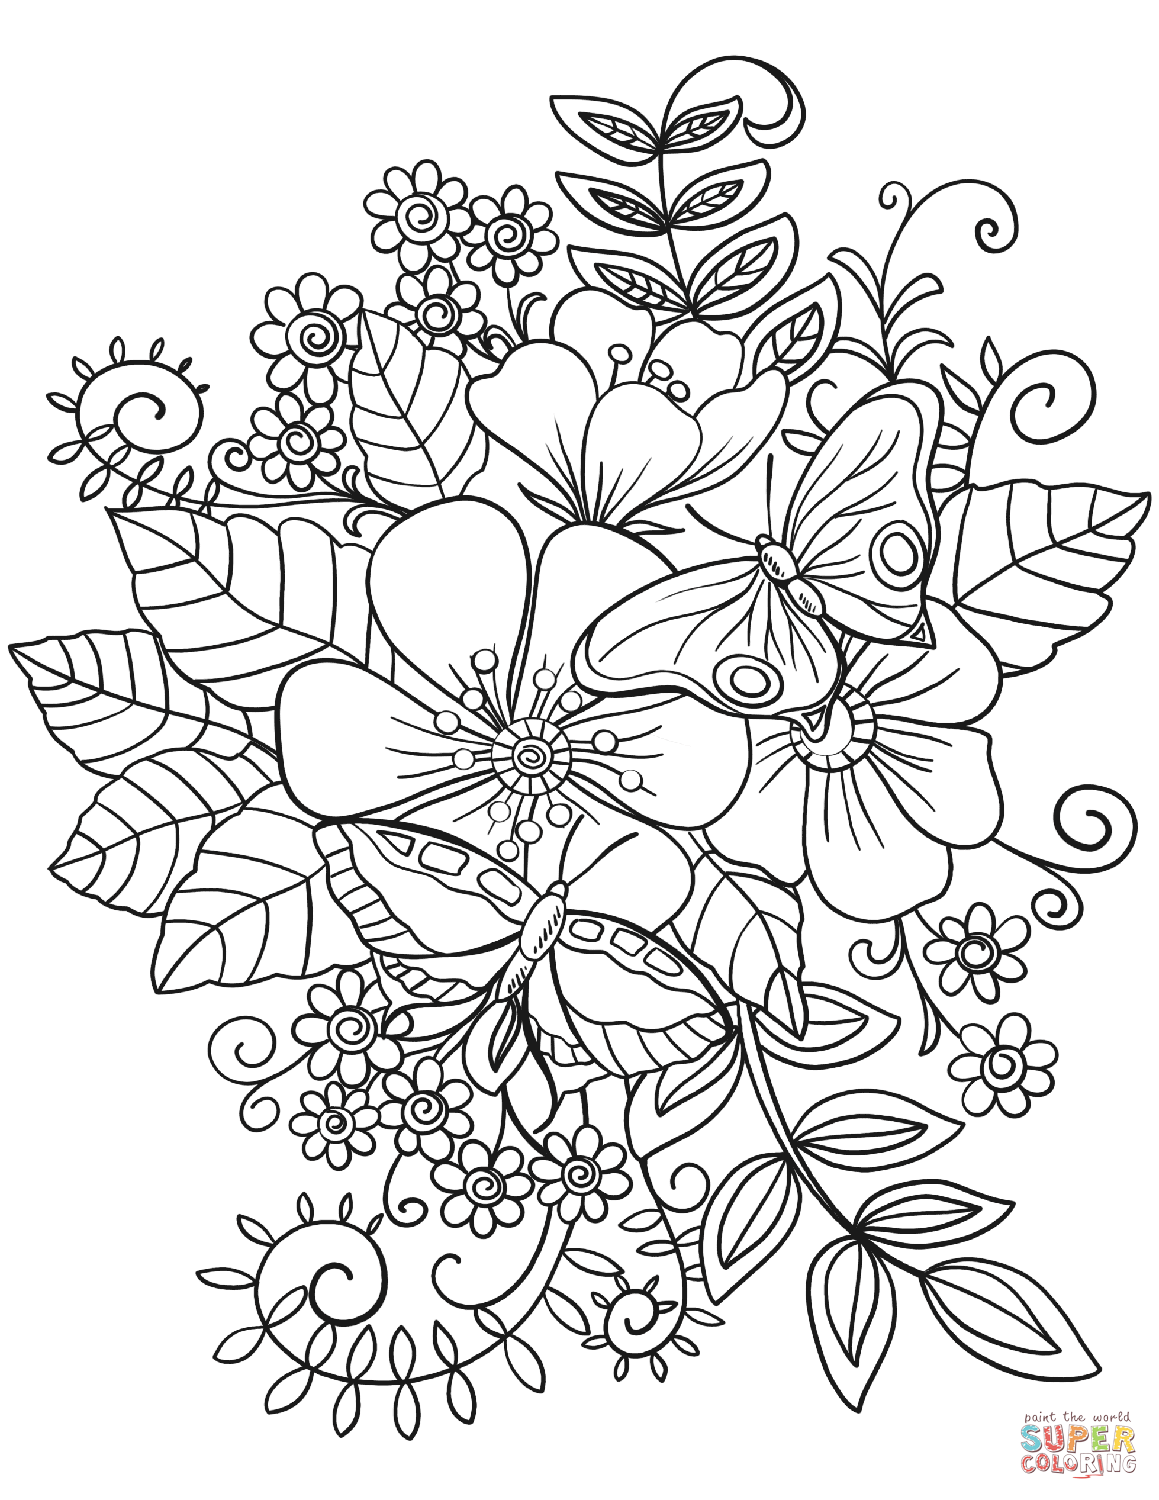 coloring sheets of flowers wild flowers coloring pages coloring home sheets of flowers coloring